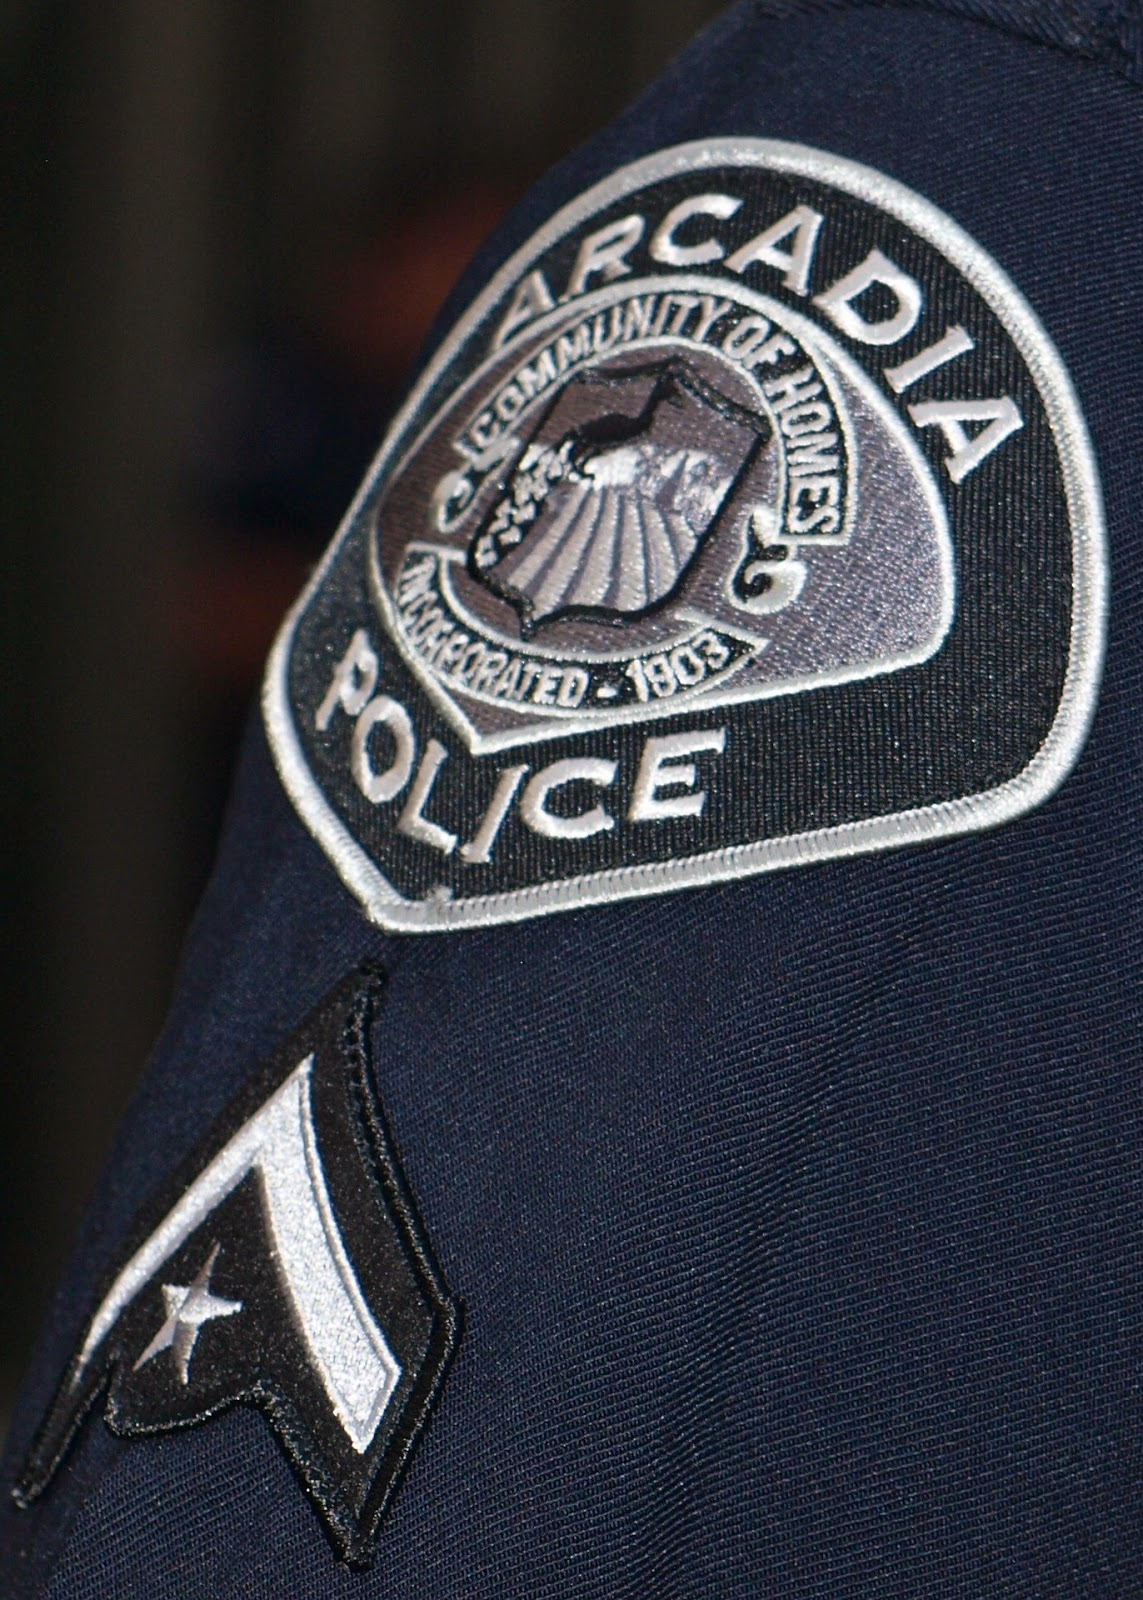 Arcadia Police Department News & Information Blog: Robbery